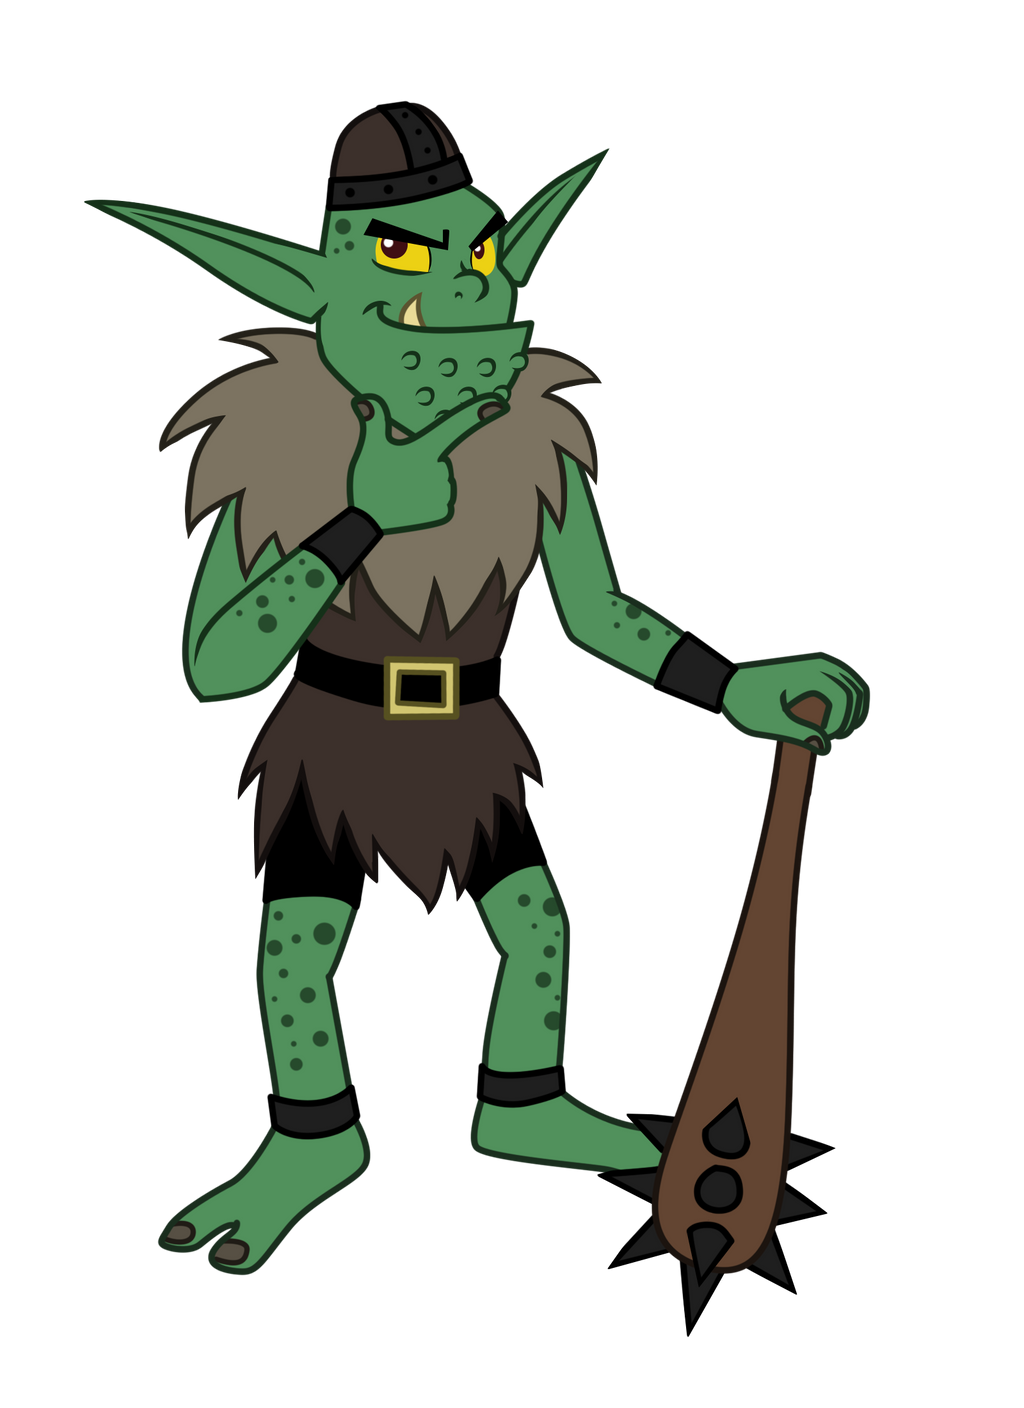 commission blarg the goblin by trinityinyang on deviantart